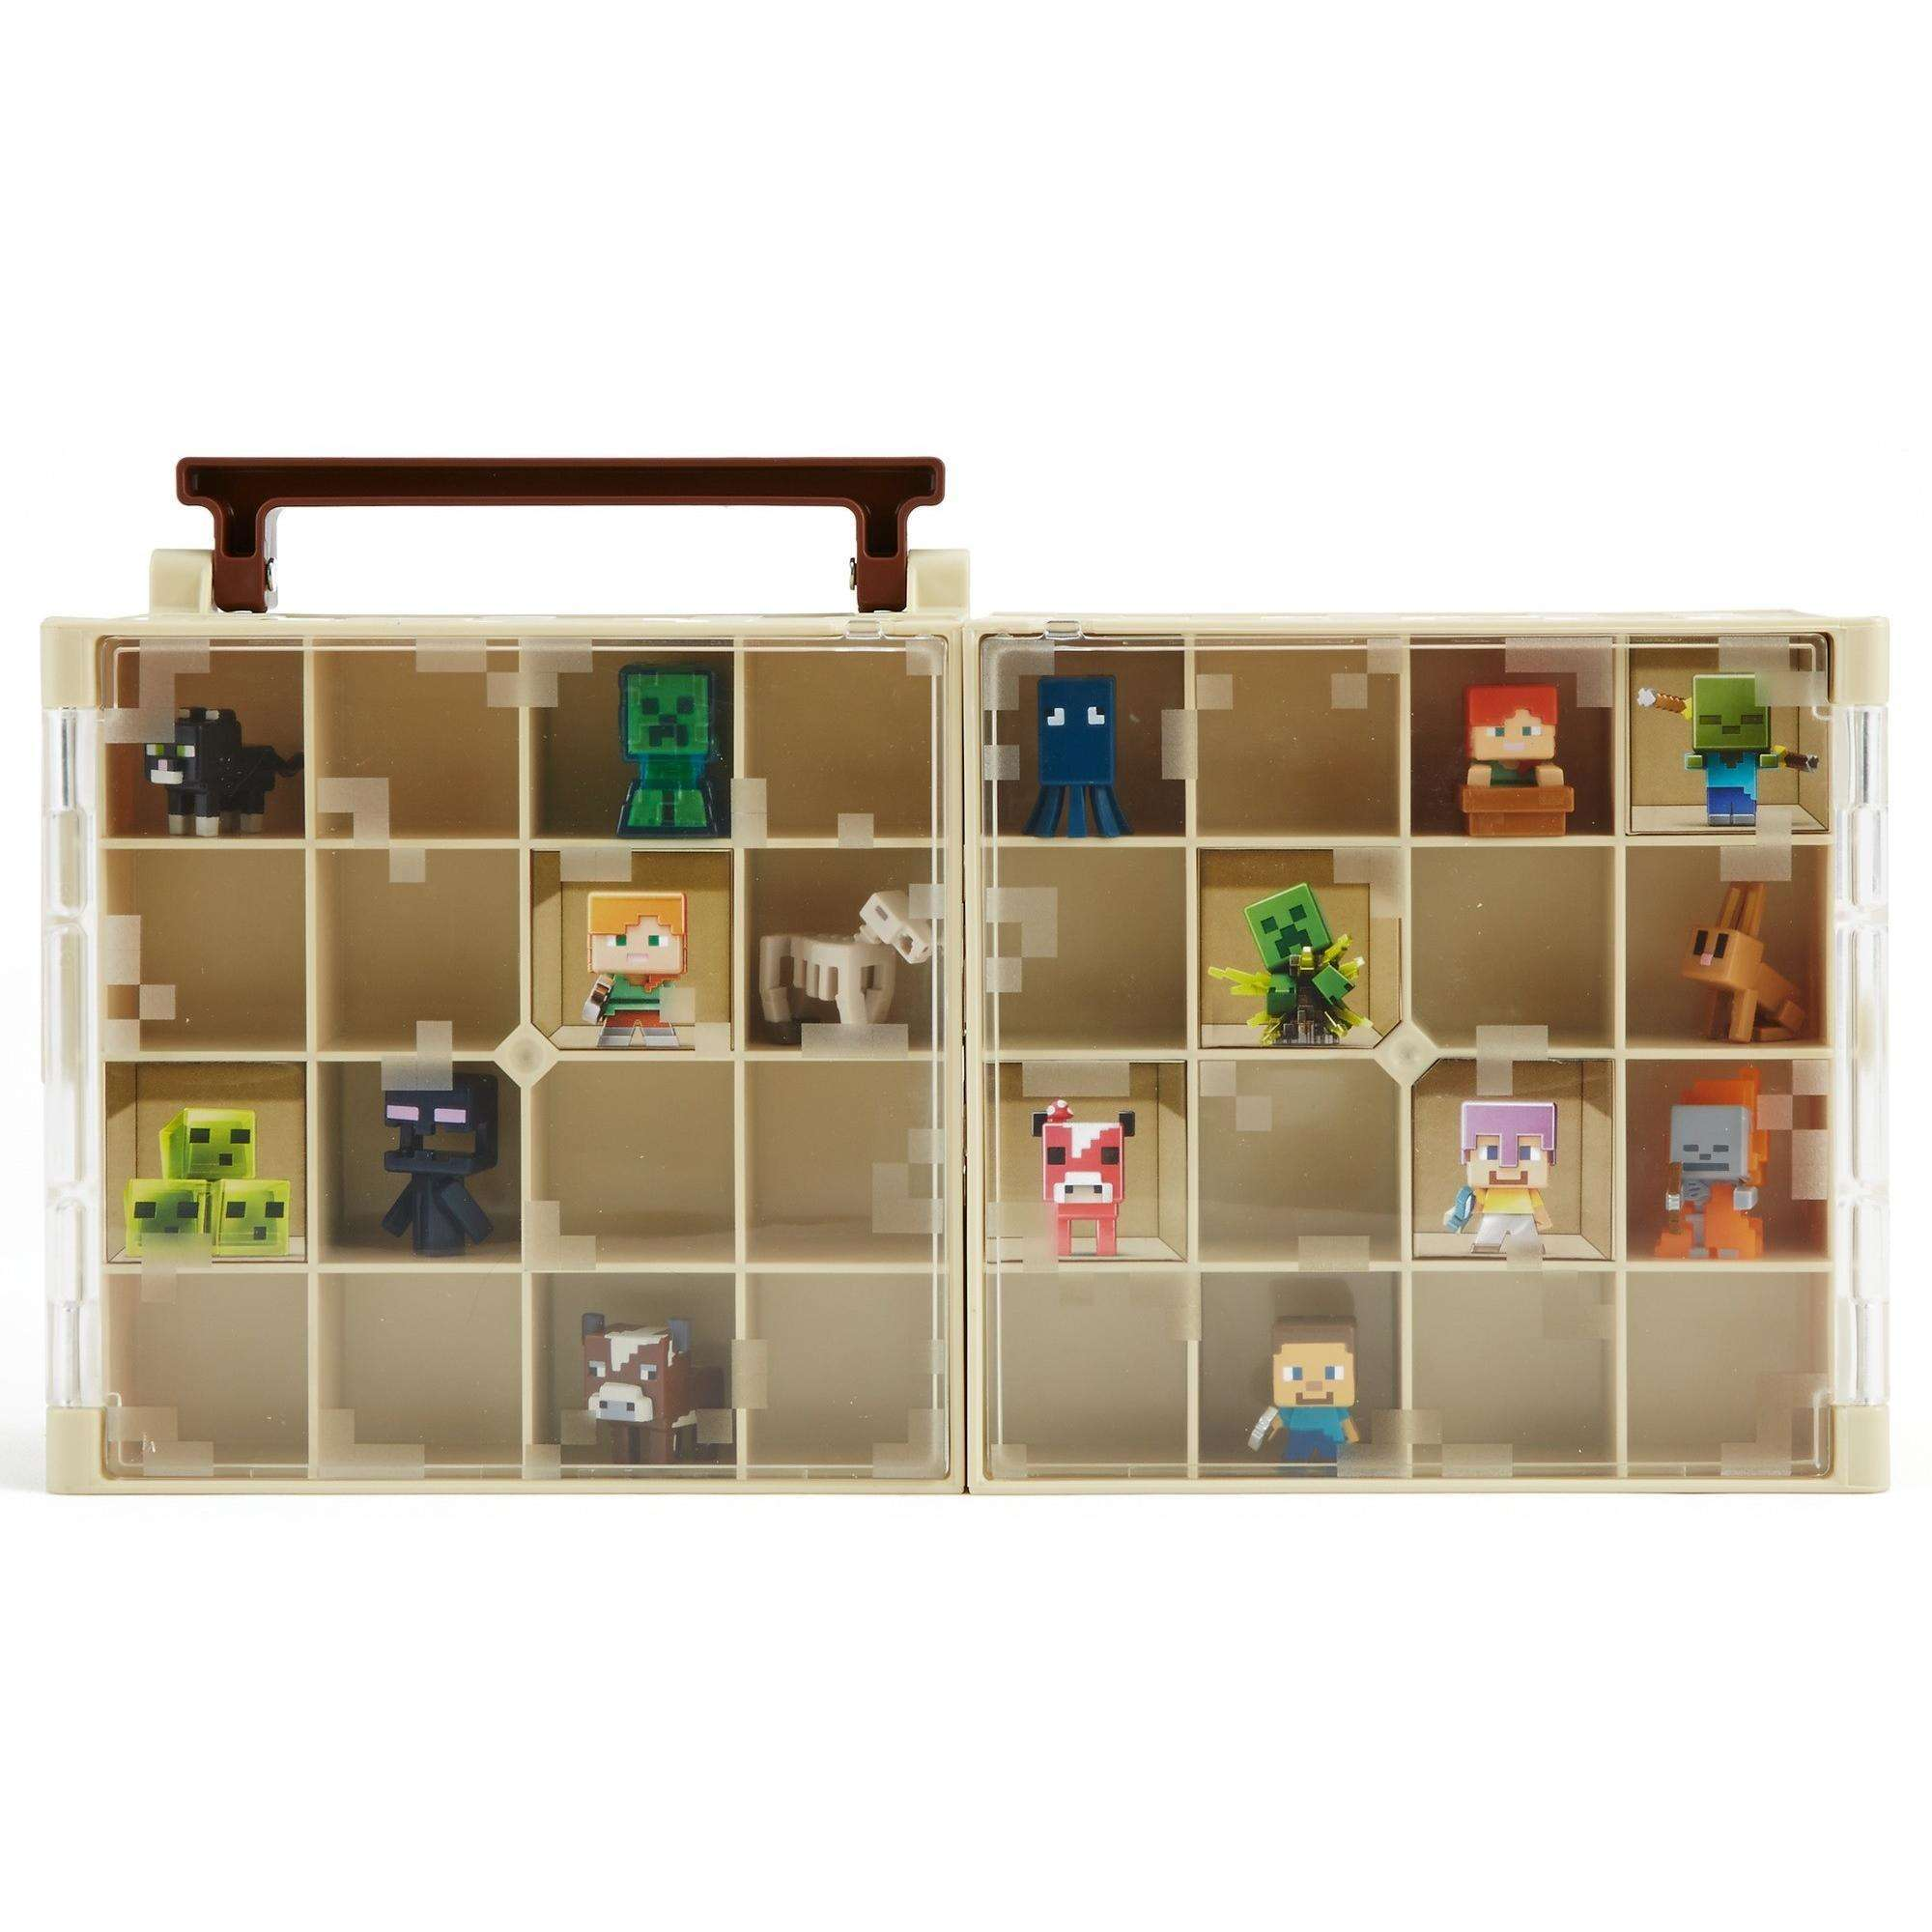 Minecraft Collector Case And Mini Figure by MATTEL BRANDS A DIVISION OF MATTEL DIRECT IMPORT INC